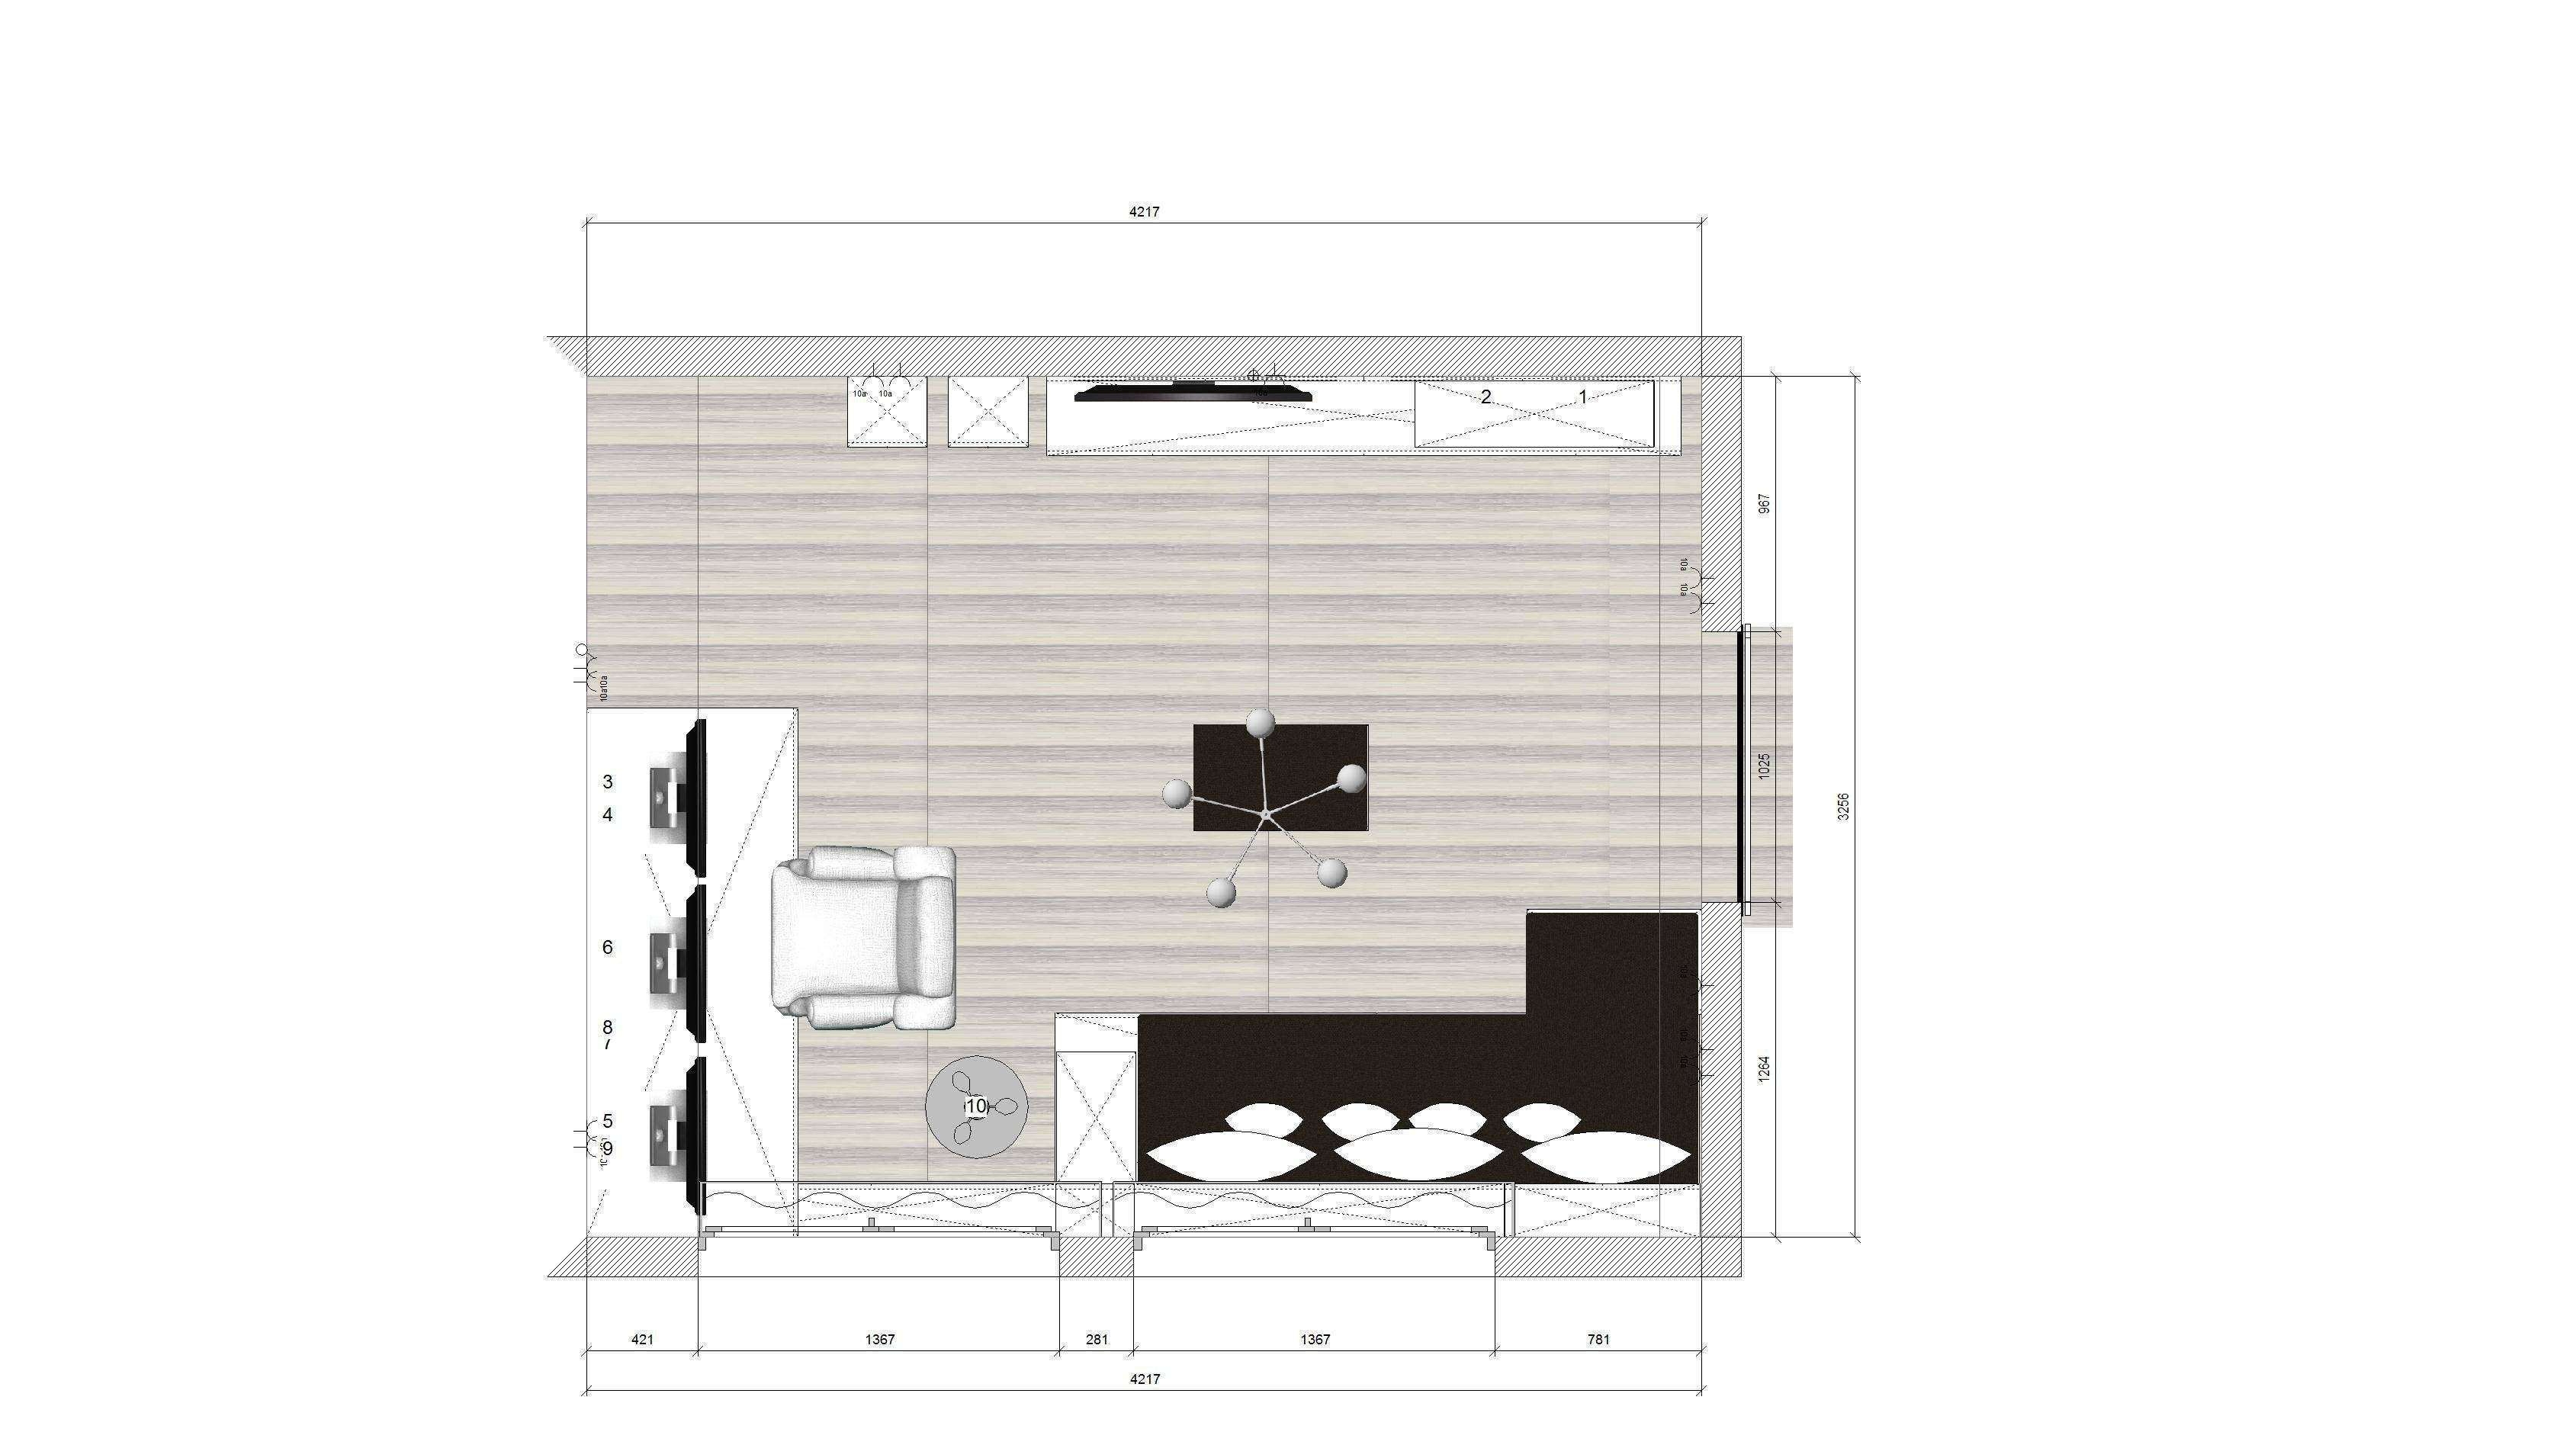 <a href=&quot;Desing interior living modern&quot;>design interior living apartament <img src='http://www.unican.ro/wp-content/themes/vita/img/dreapta.png' class='pull-right hidden-xs' style='margin-right:-10px;margin-top:-10px; max-height:41px'></a>